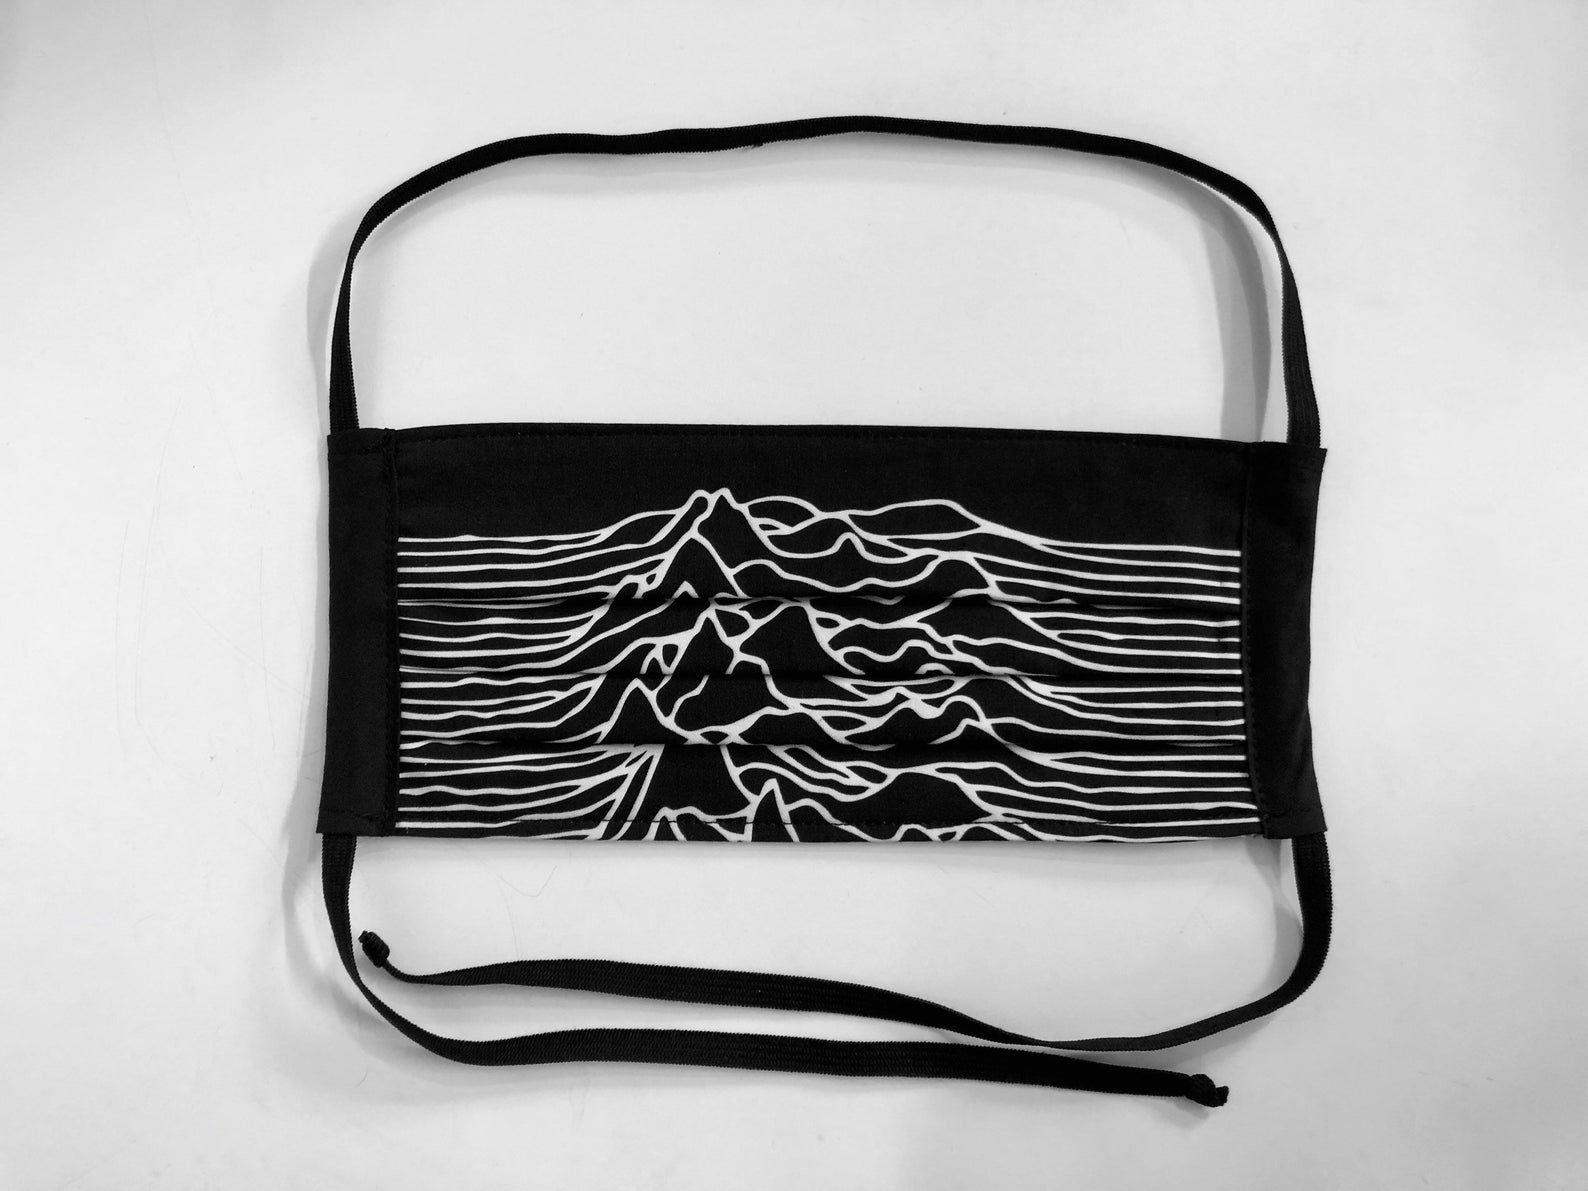 unknown pleasures - pleated face mask // face covering - 2 cotton layers - joy division